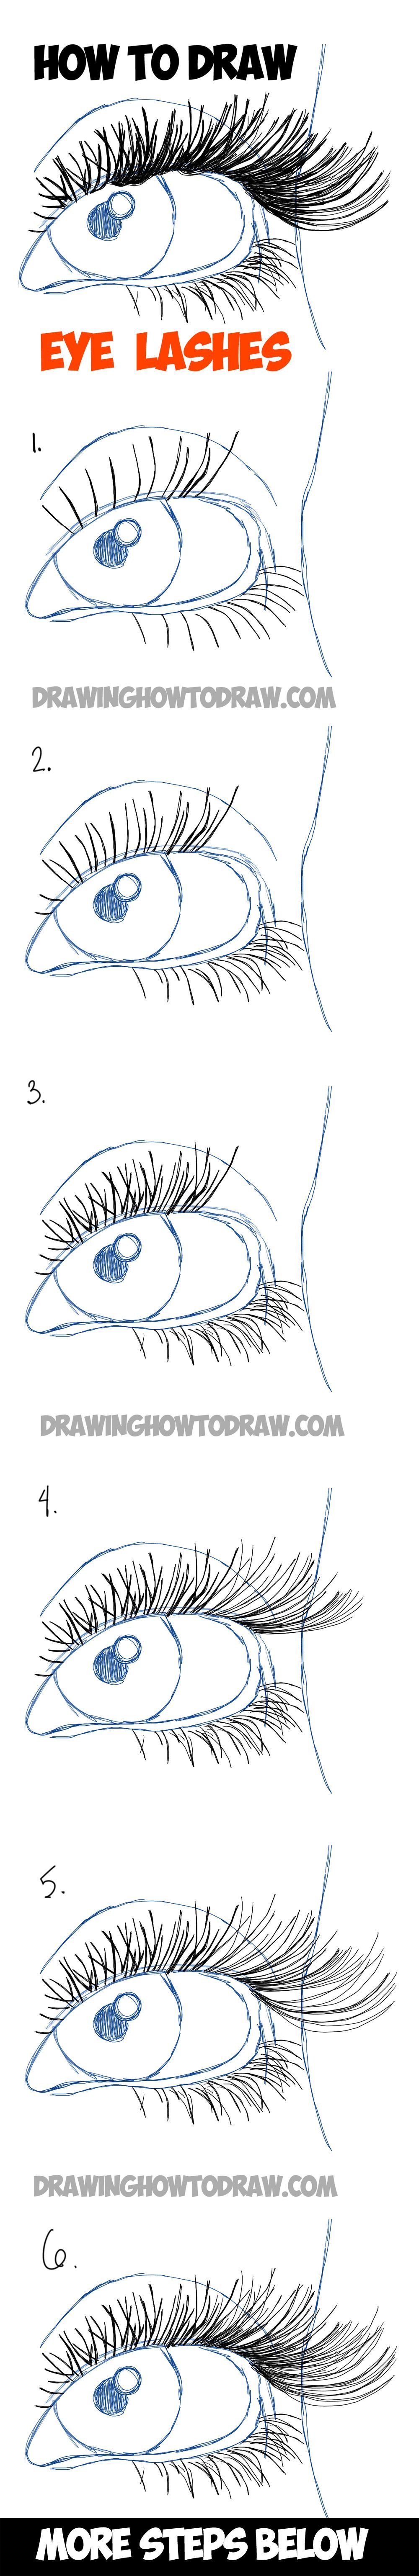 How to Draw Eye Lashes with Step by Step Illustrated Tutorial Learn How to Draw Eye Lashes with Step by Step Illustrated Tutorial to Draw Eye Lashes with Step by Step Illustrated Tutorial Learn How to Draw Eye Lashes with Step by Step Illustrated TutorialLearn How to Draw Eye Lashes with Step by Step Illustrated Tutorial